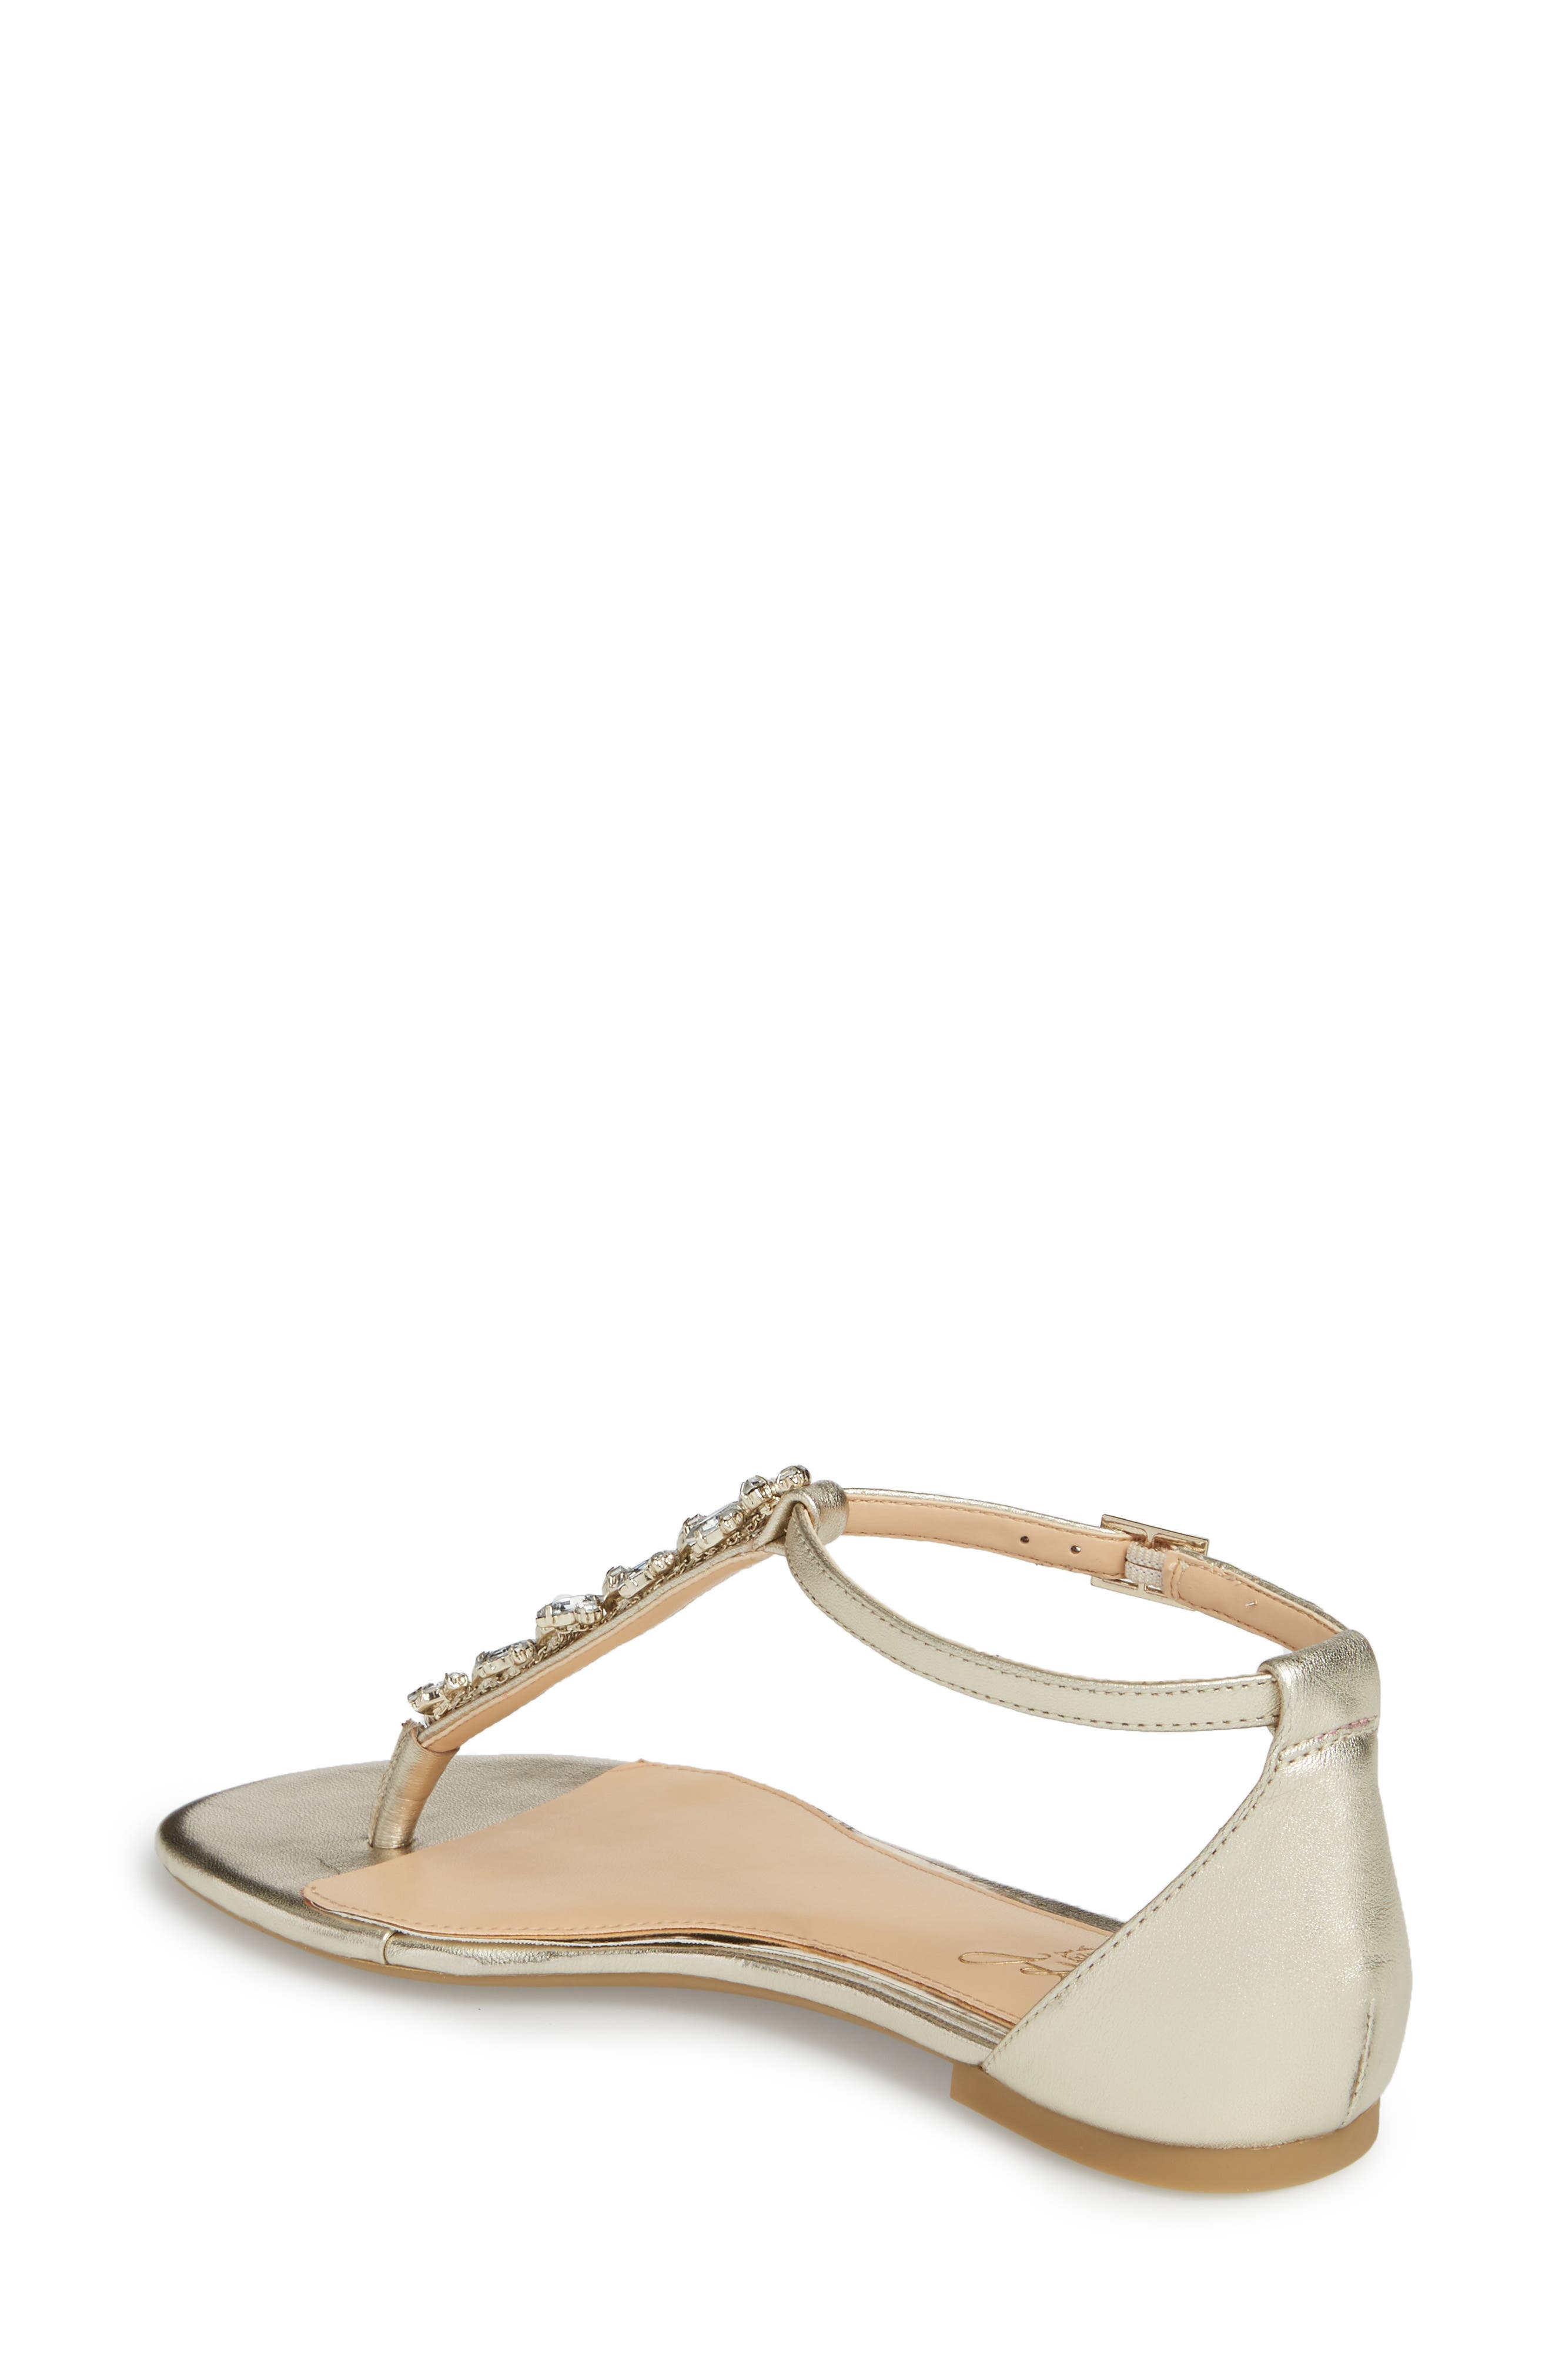 Carrol Embellished T-Strap Sandal,                             Alternate thumbnail 2, color,                             GOLD METALLIC LEATHER